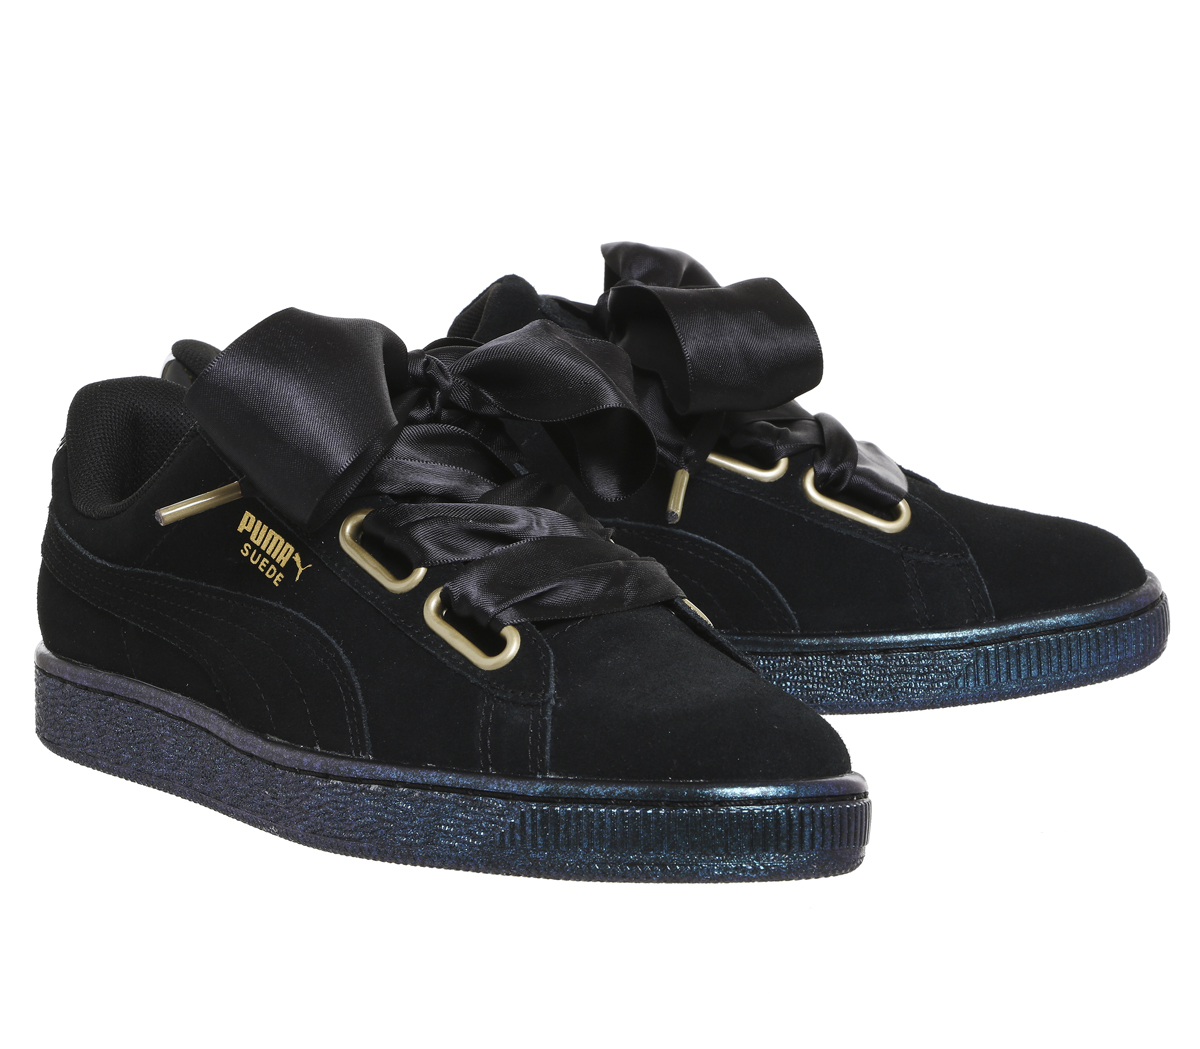 the best attitude 810d4 7003f Womens-Puma-Suede-Heart-PUMA-BLACK-SATIN-Trainers-